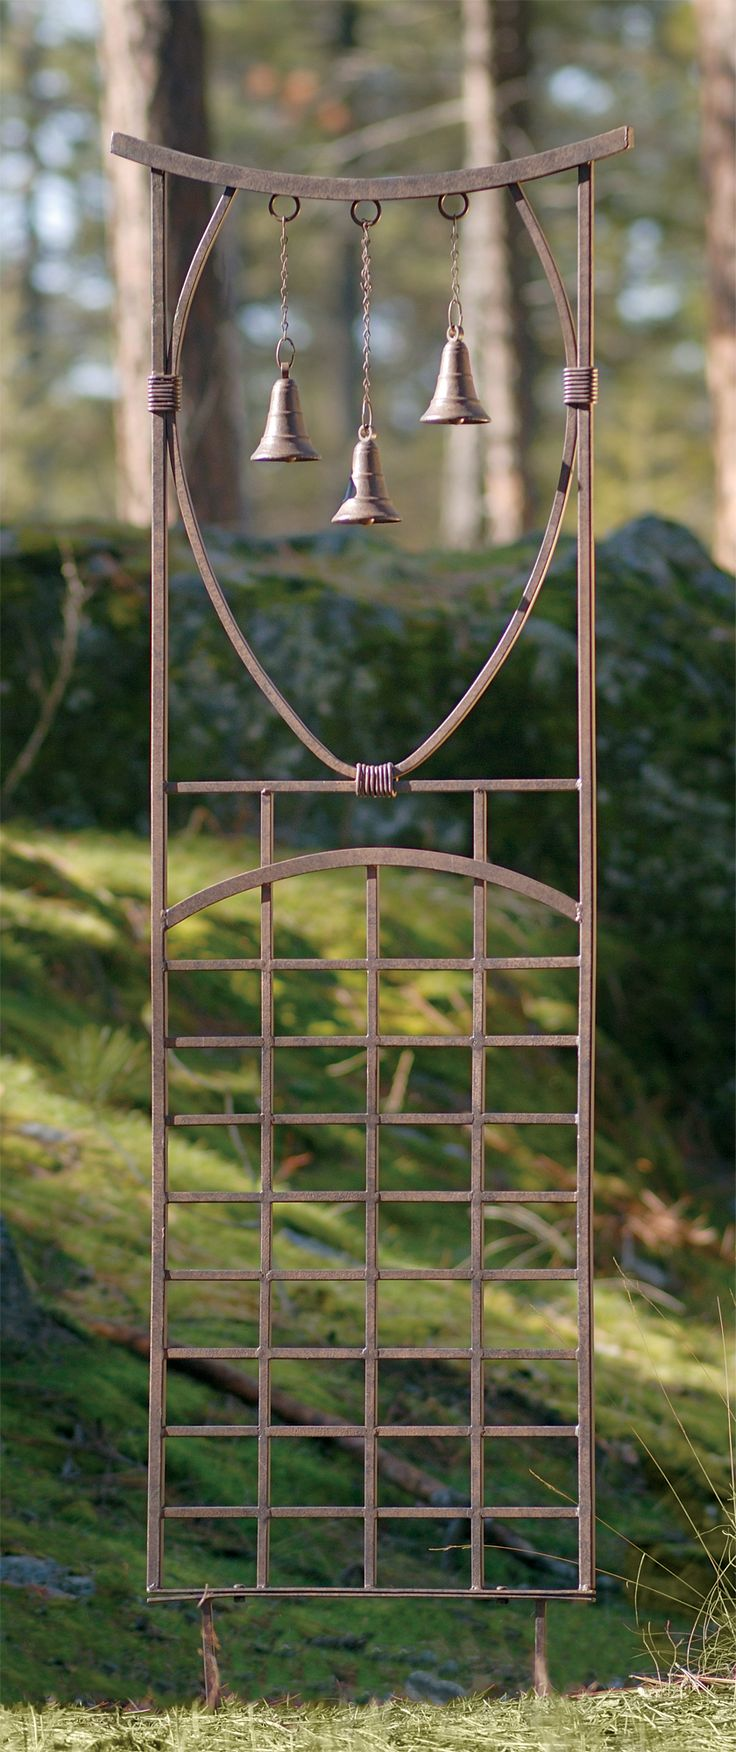 Witch Garden:  #Witch #Garden ~ This #trellis has wind chimes. They'd also be a great alarm when you're busy in the garden and someone comes to visit!